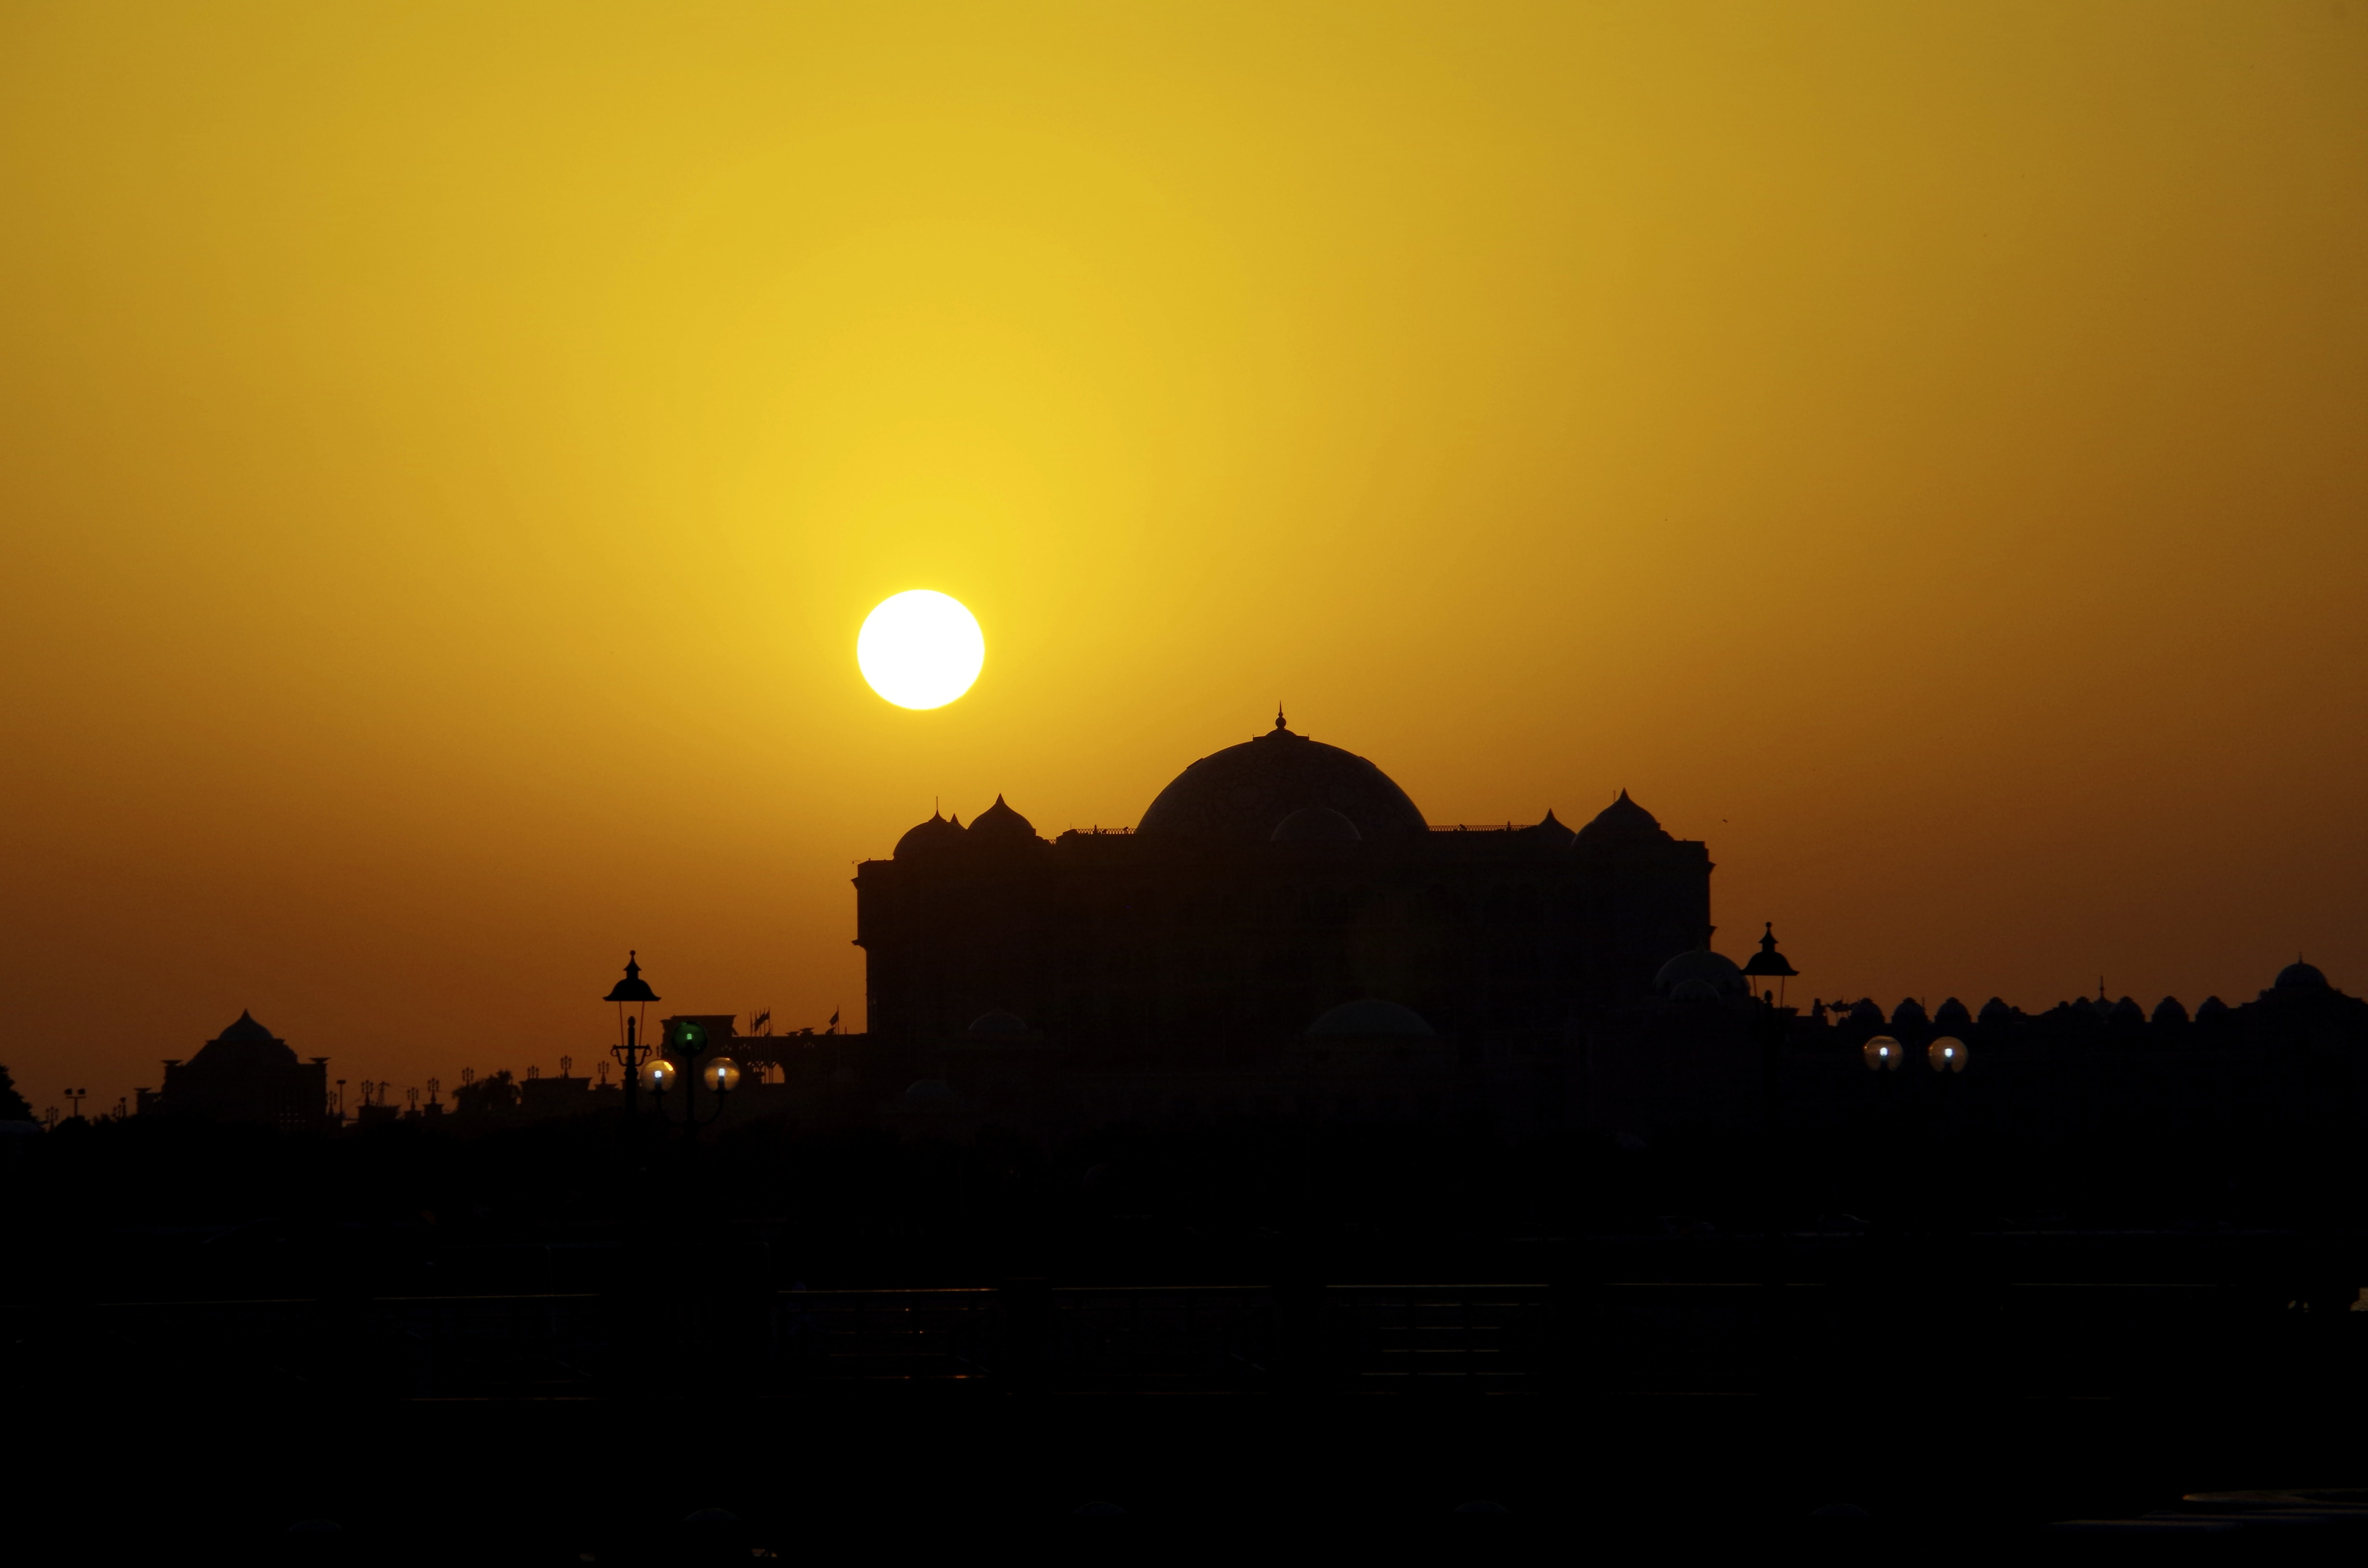 silhouette of dome building during golden hour